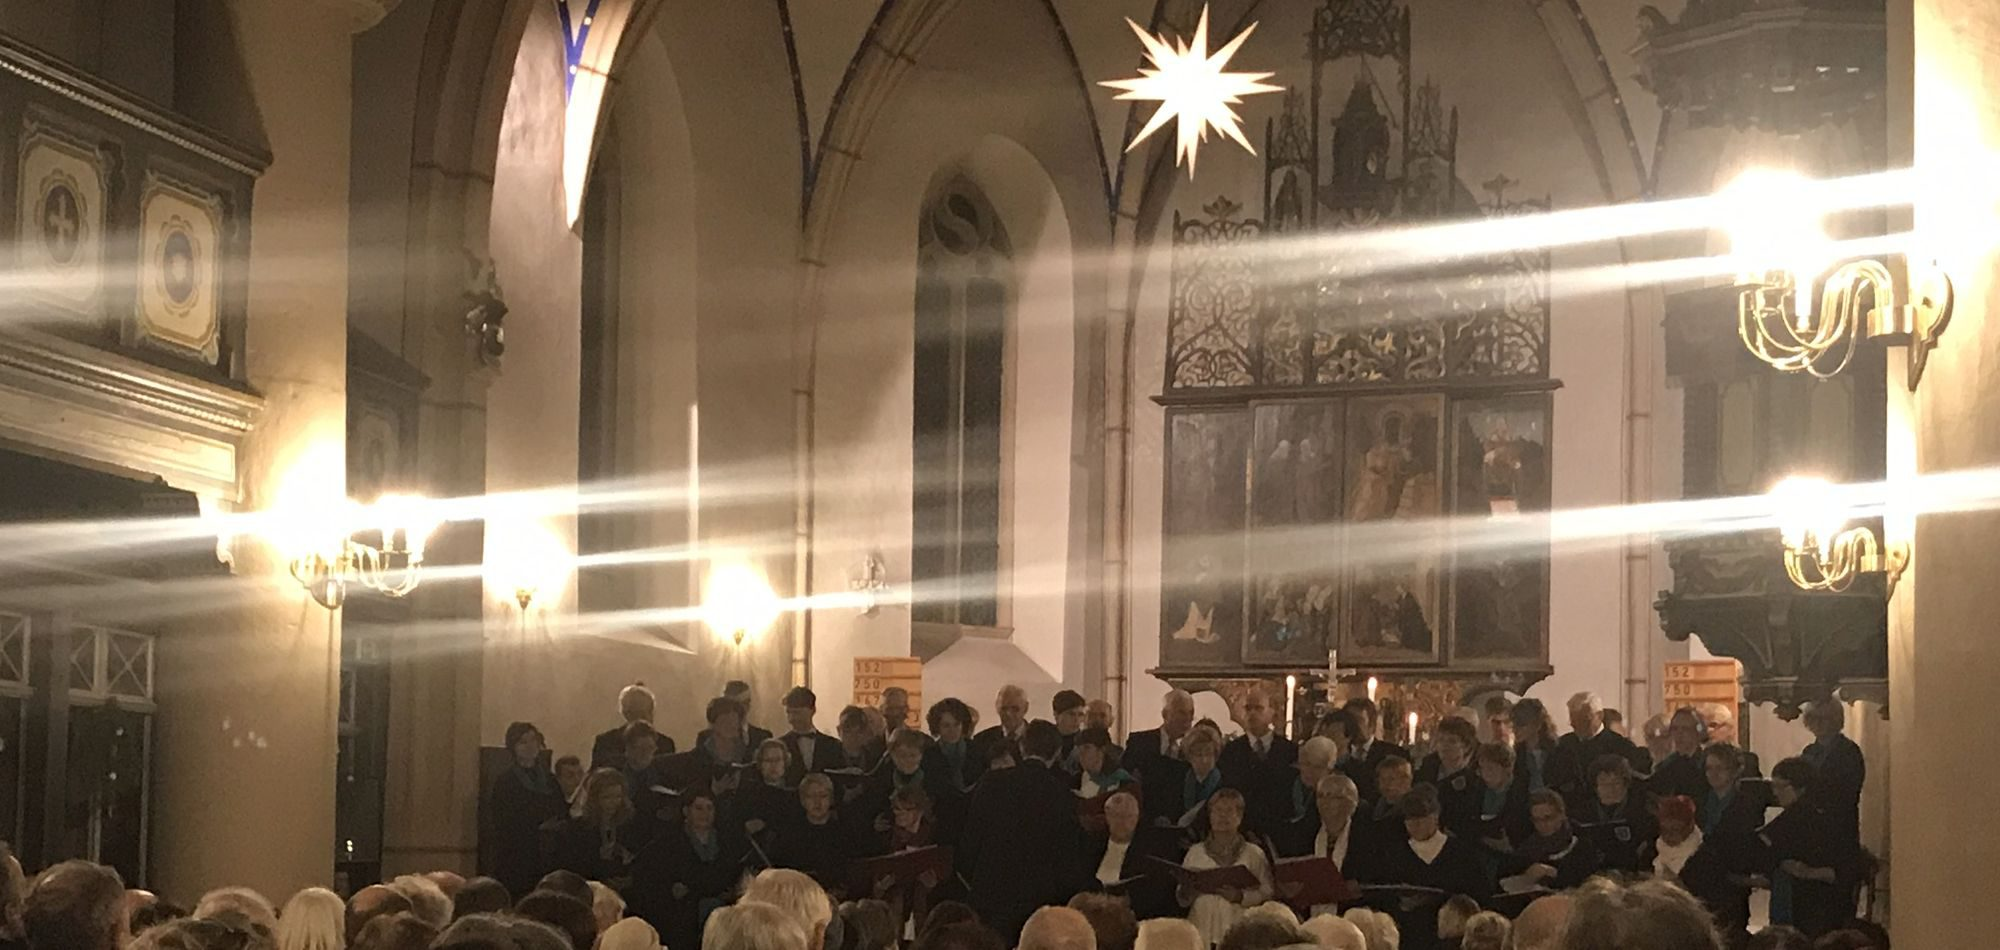 Konzert in der Kirche am 2. Advent